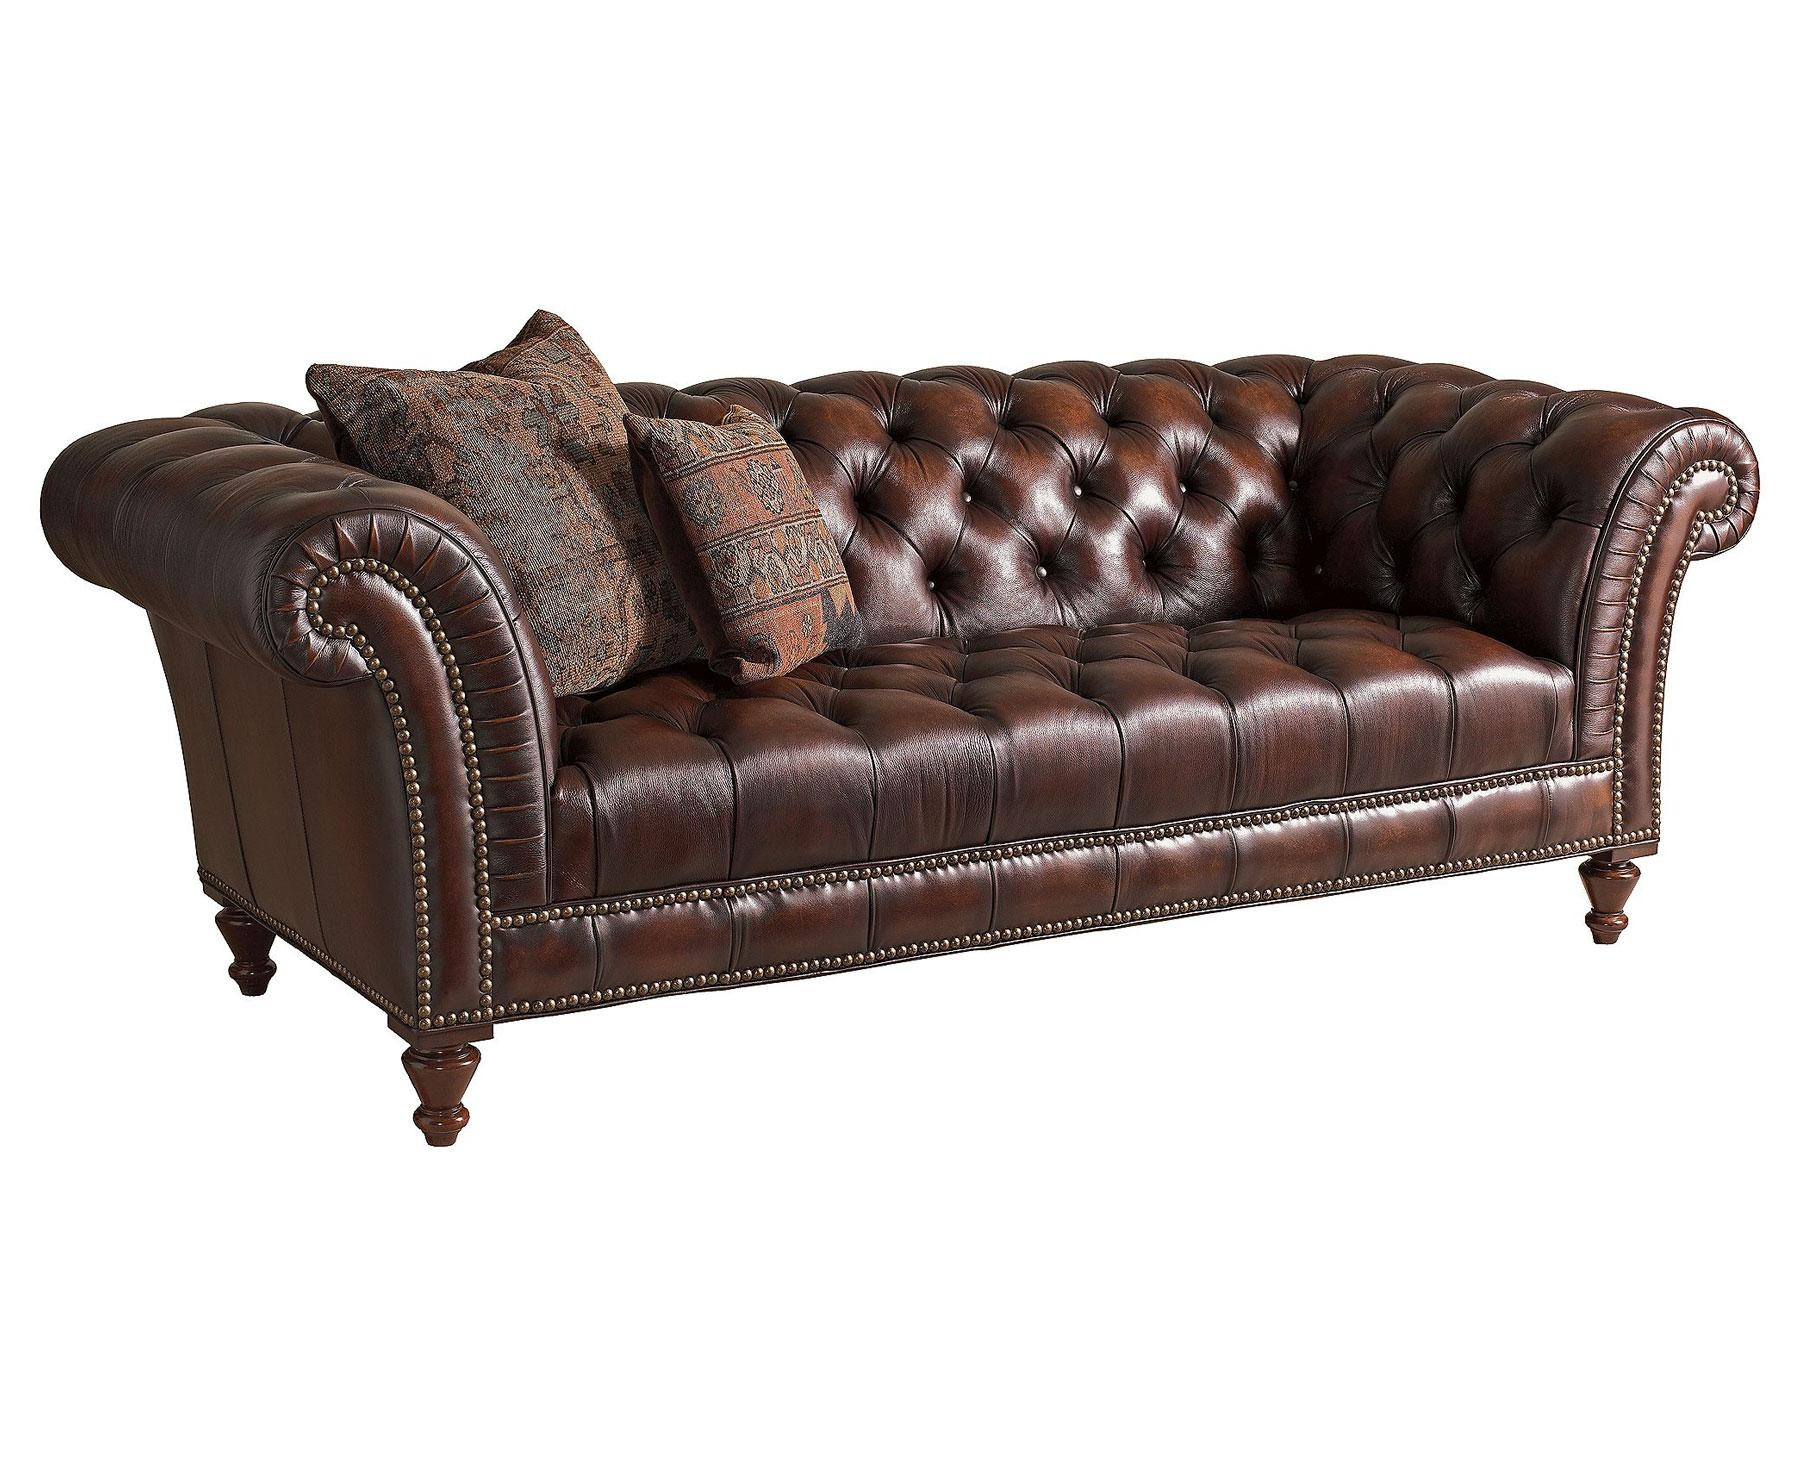 Distressed Leather Sofa Ebay | Tehranmix Decoration Throughout Victorian Leather Sofas (View 13 of 20)